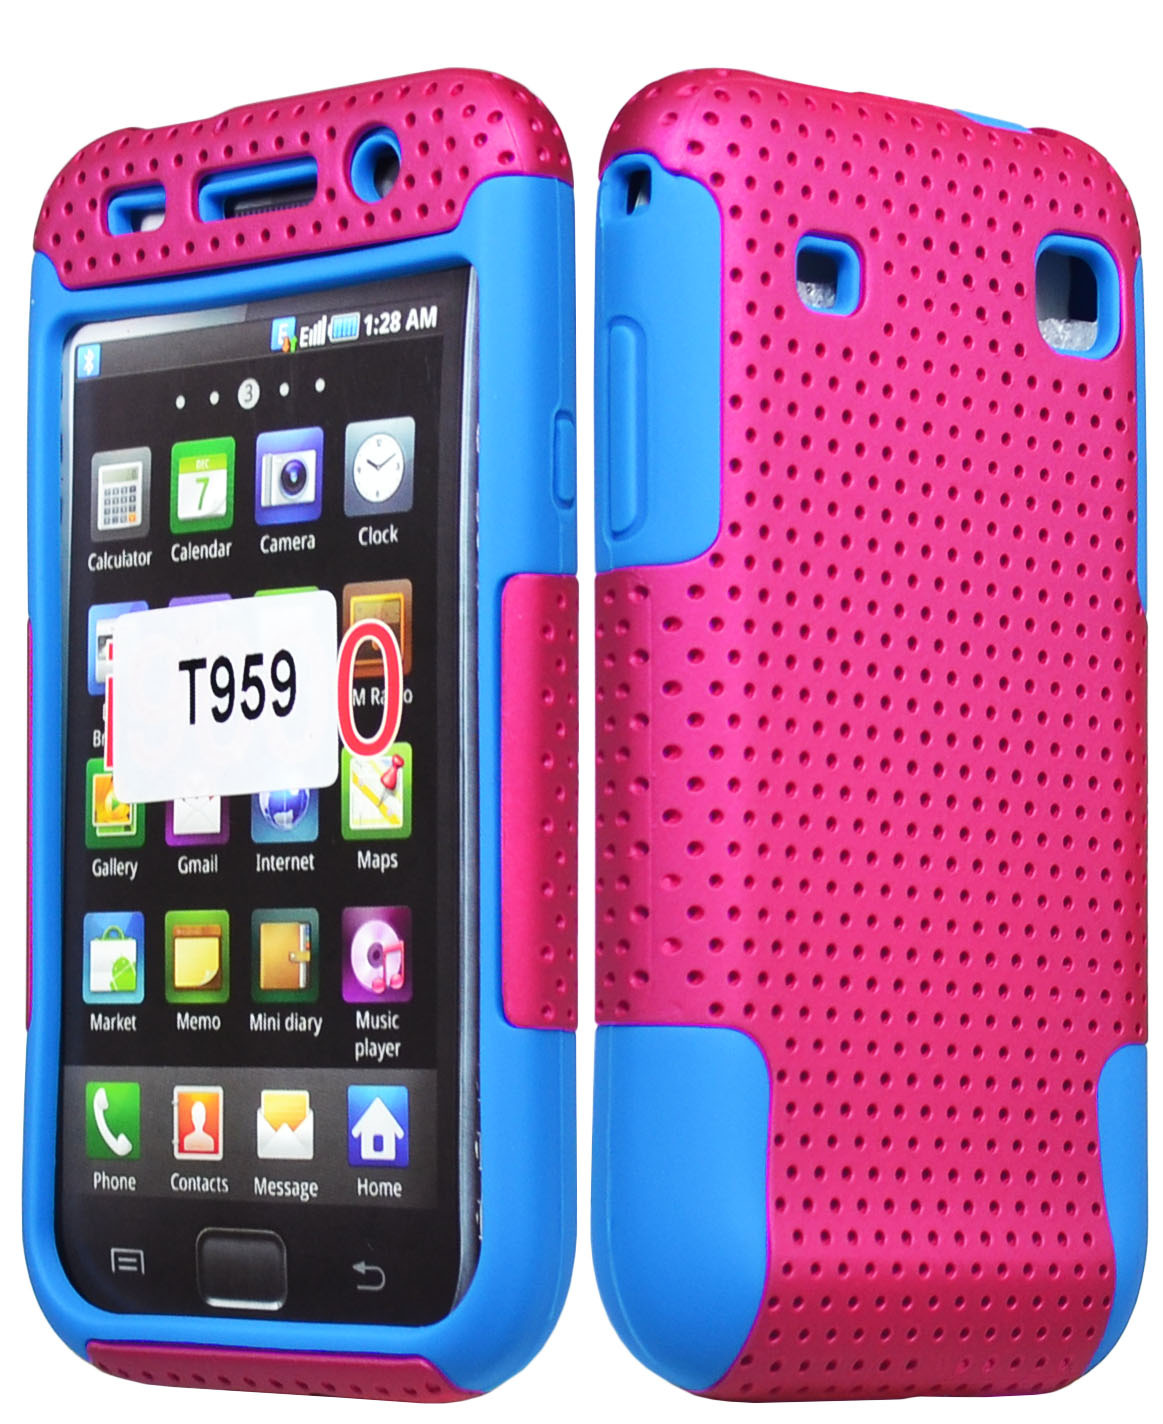 Samsung Galaxy S1 For Samsung Galaxy S1 T959 Vibrant Hybrid Pink Case 43 Blue